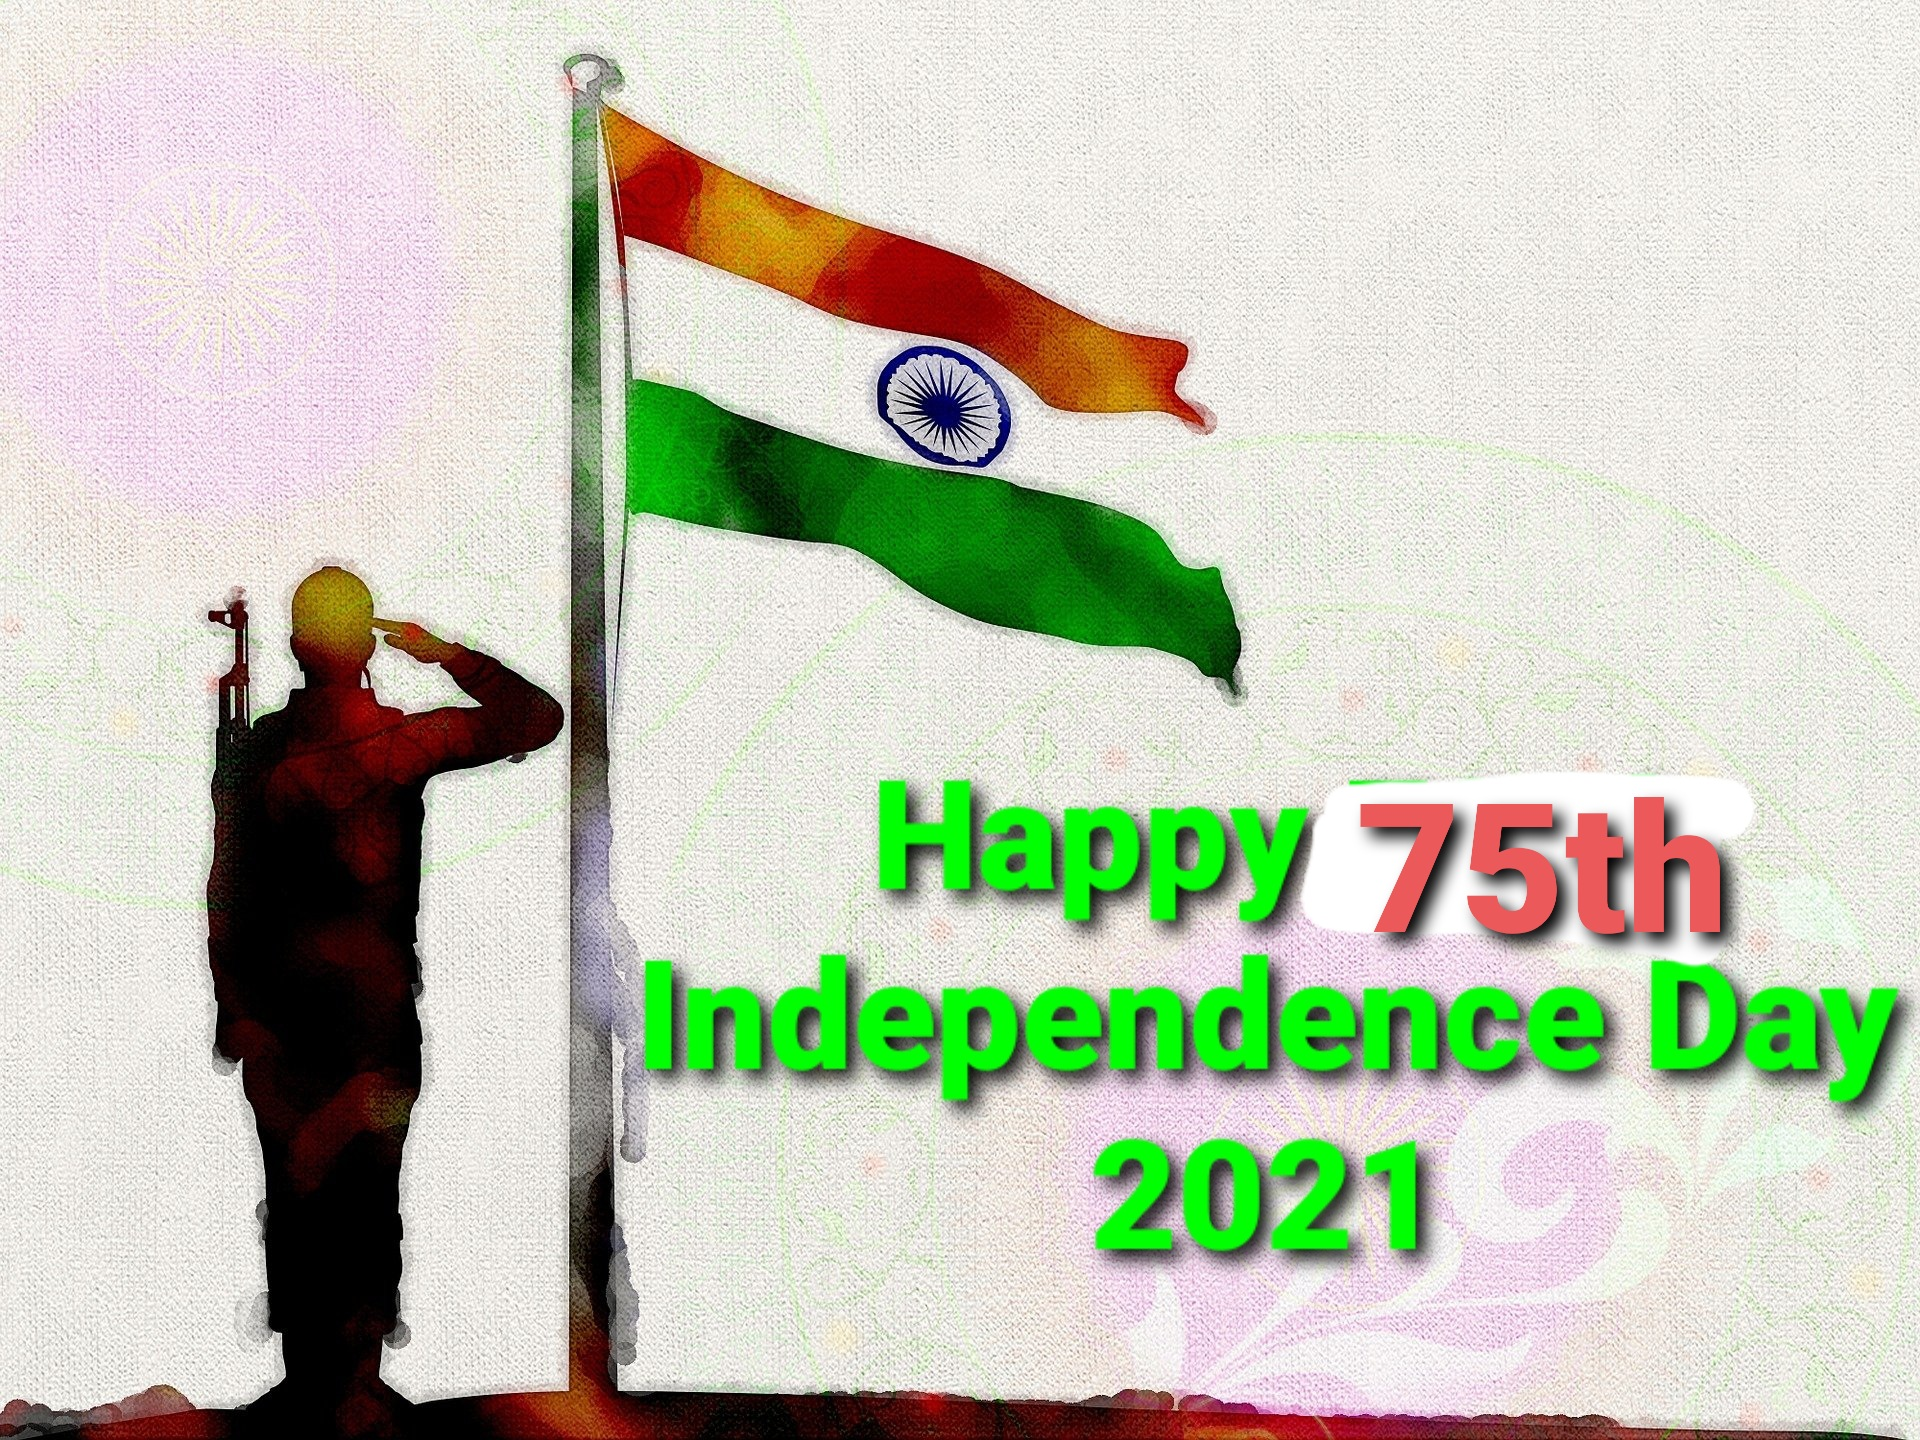 75th Happy Independence Day India 2021 Gif, Images, Quotes, Speeches